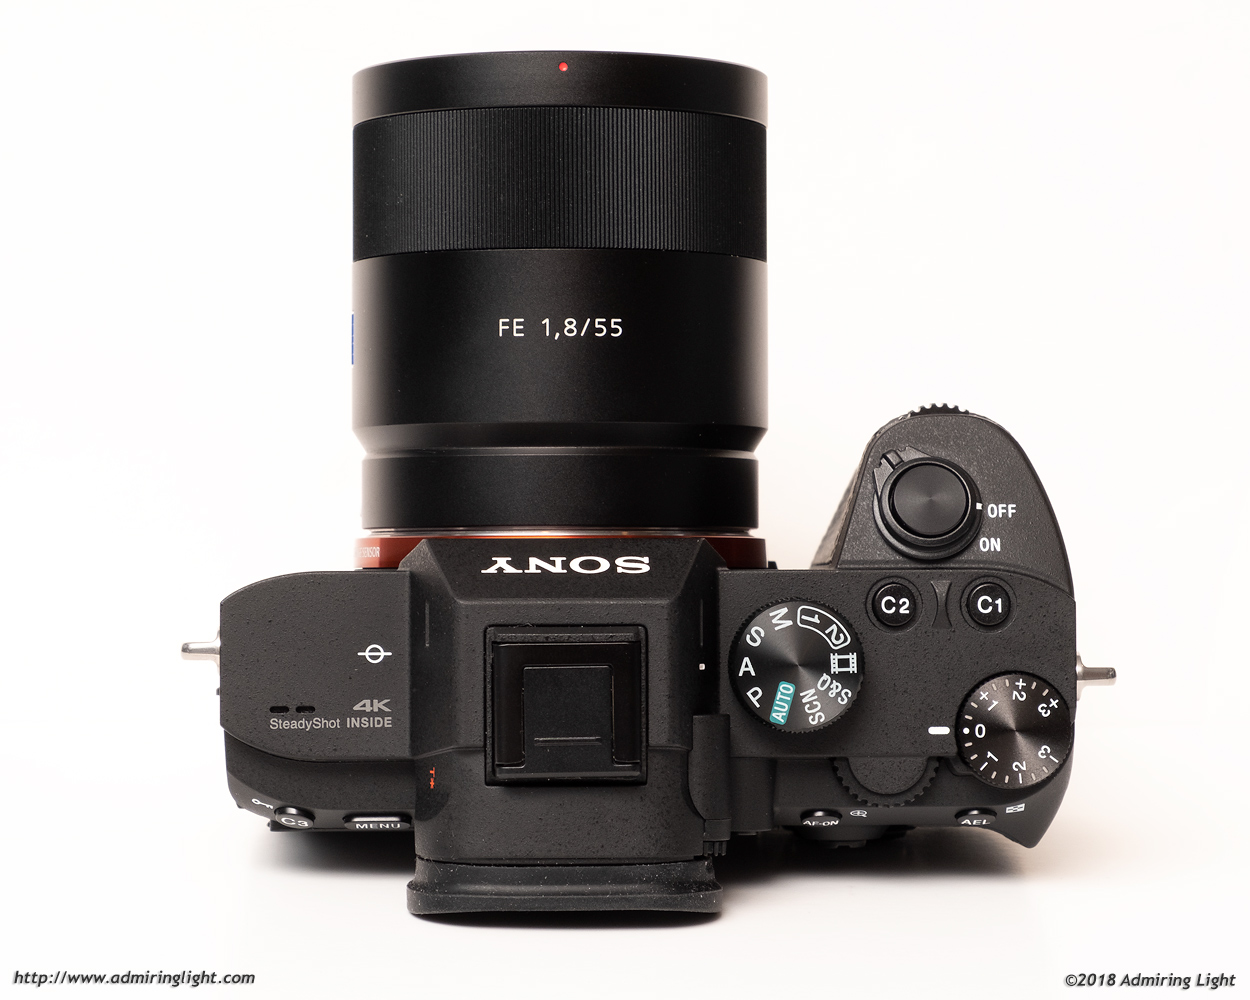 One of the A7 III's changes in body style is the deeper grip, matching the A7R III and A9 bodies that came before it.